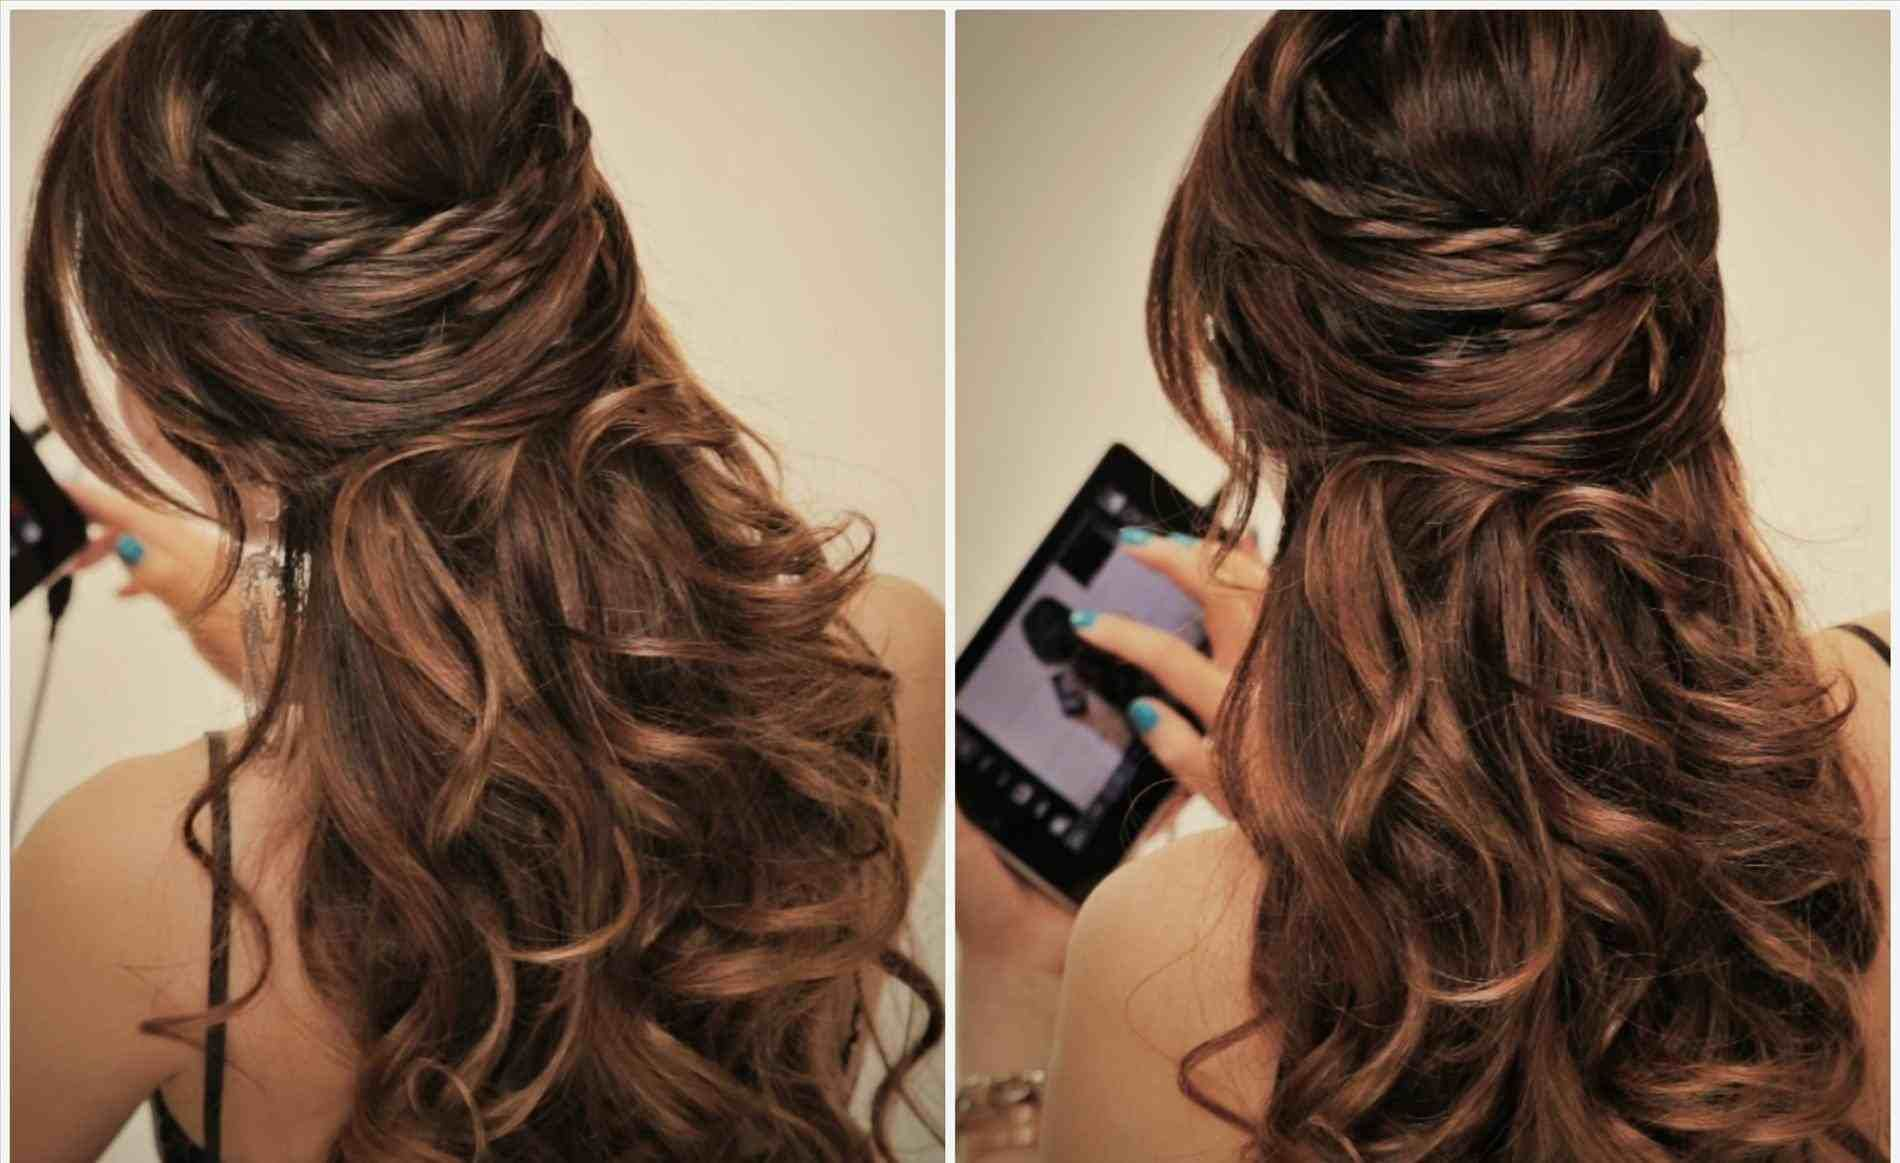 Party hairstyles for women step by step hair stylist and models